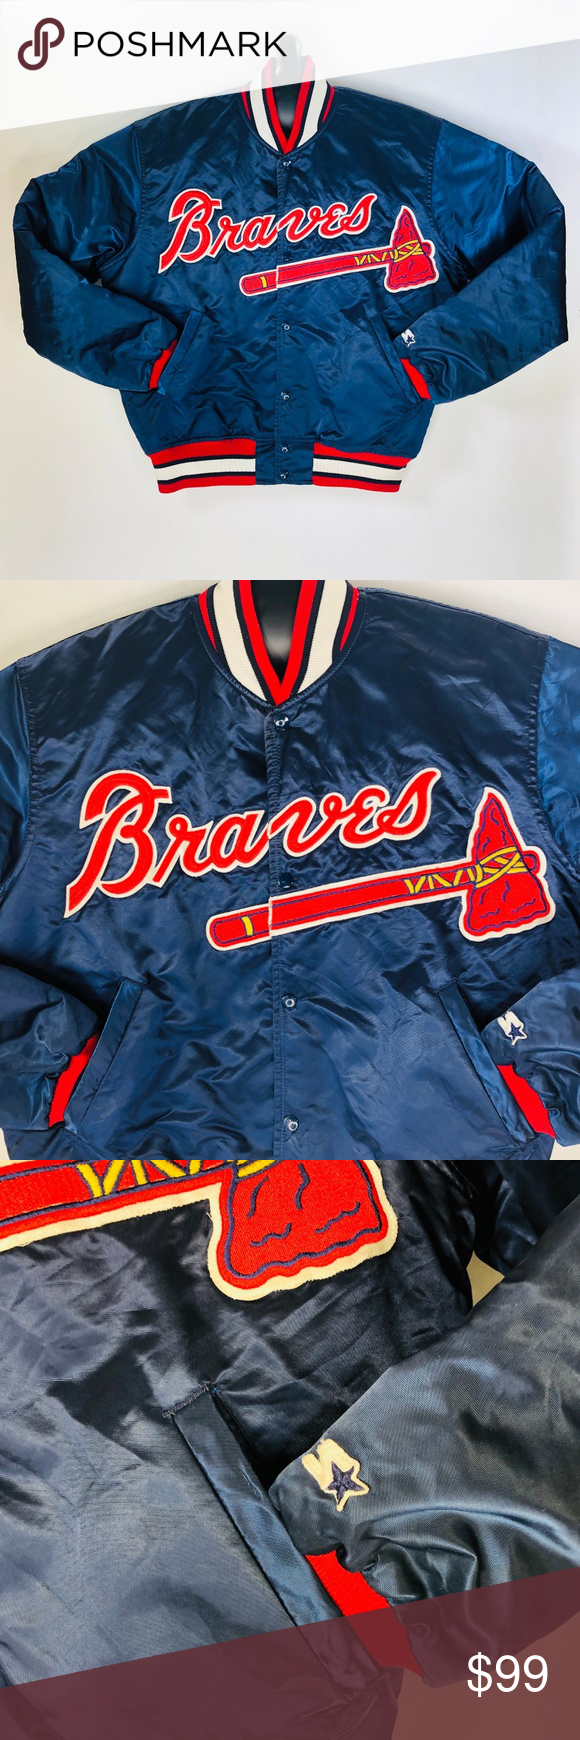 Starter Diamond Collection Atlanta Braves Jacket L Atlanta Braves Jackets Braves